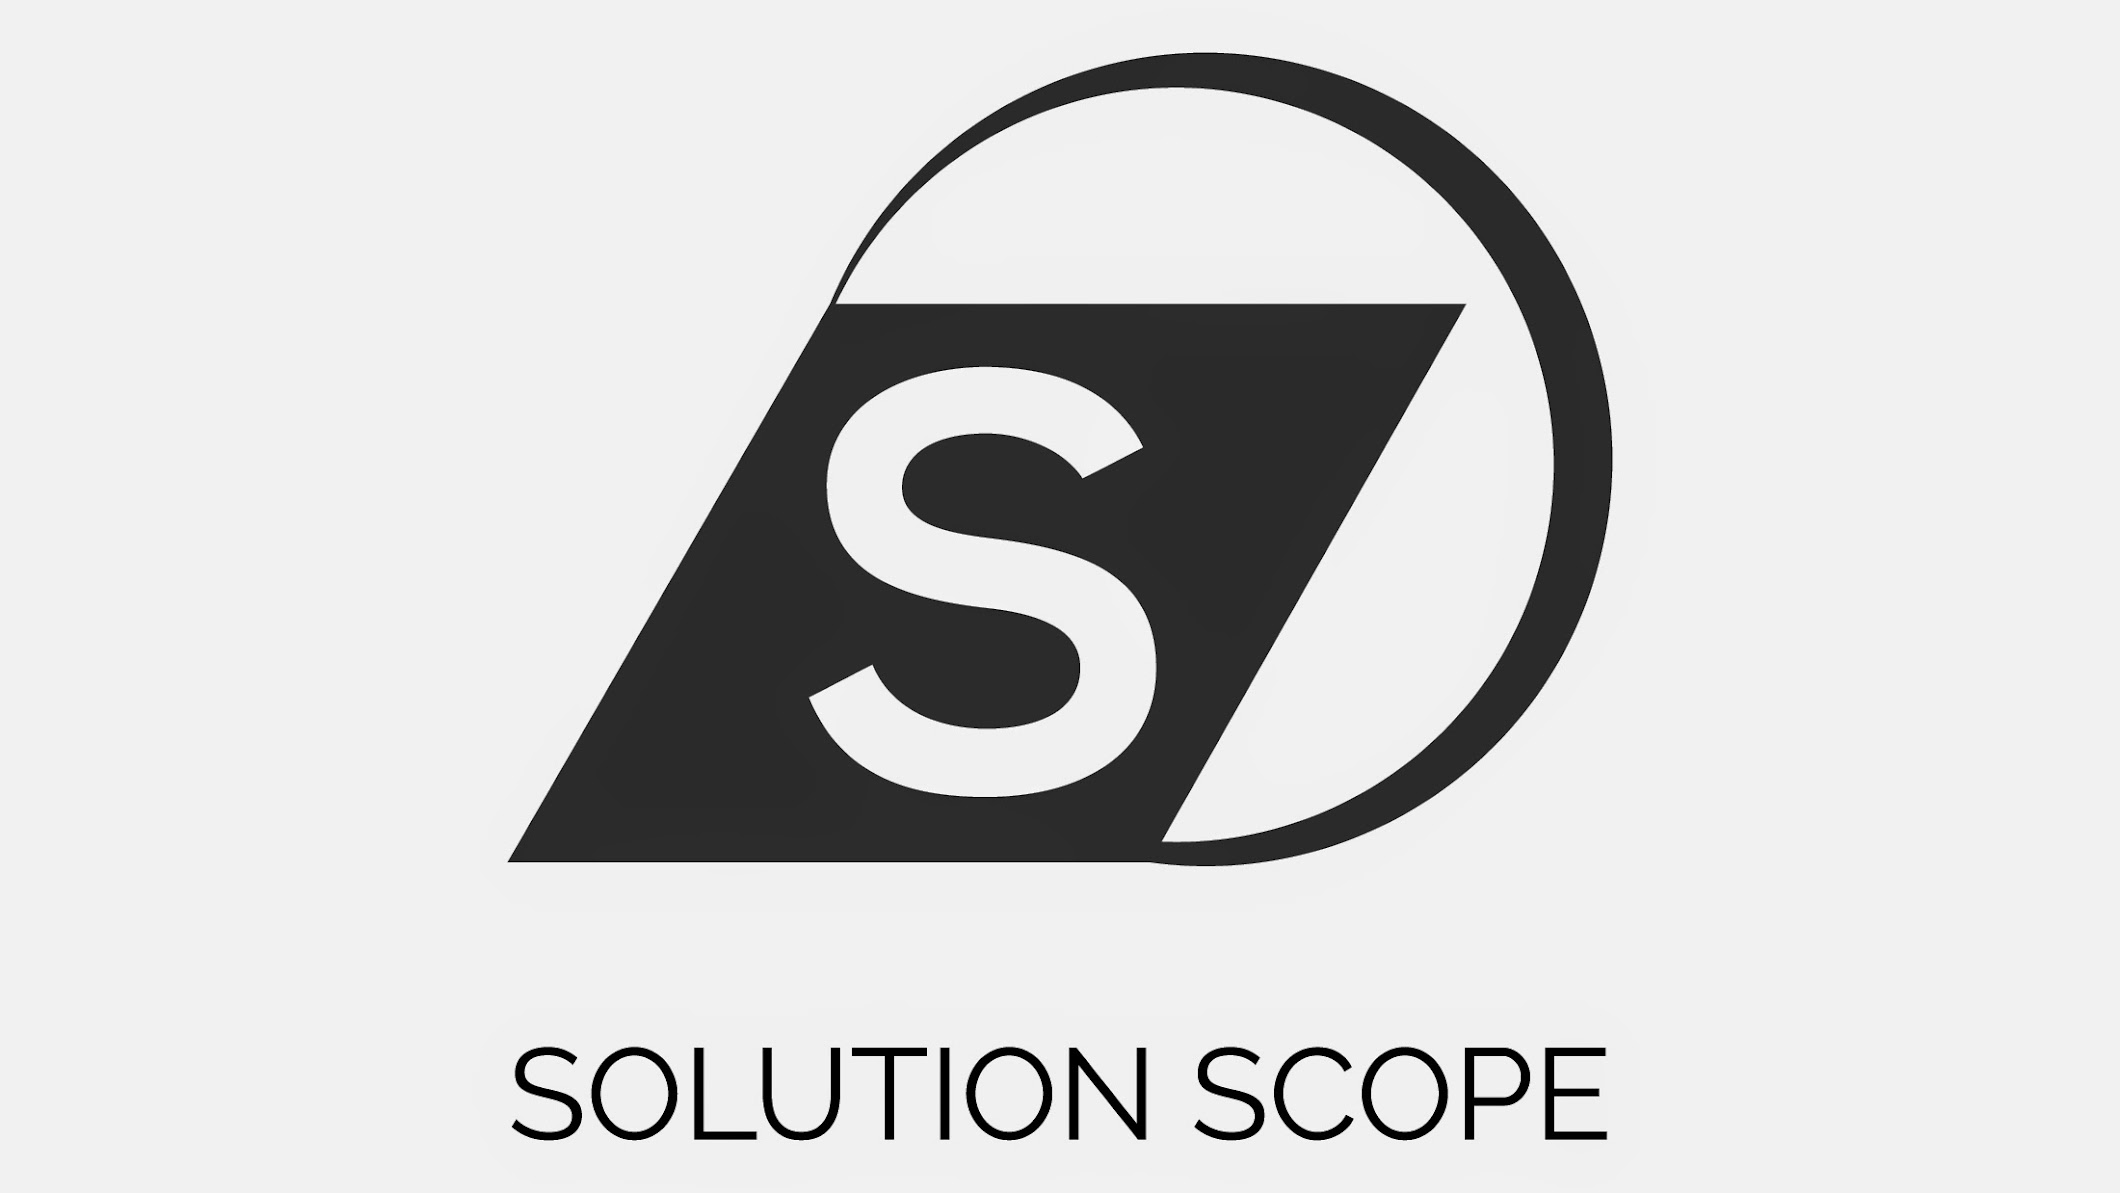 Solution Scope Youtube Channel